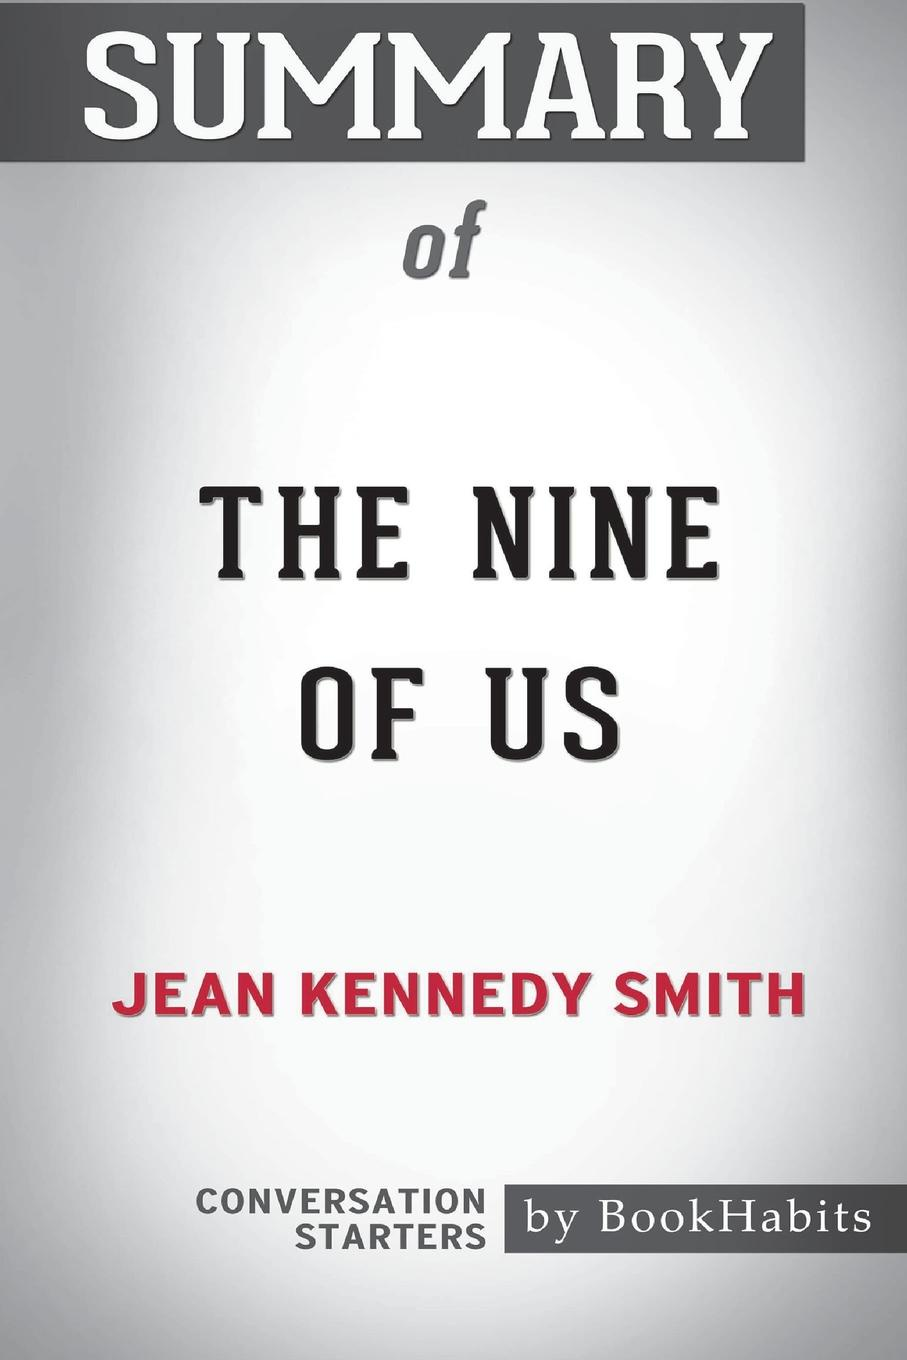 BookHabits Summary of The Nine of Us by Jean Kennedy Smith. Conversation Starters michael marshall smith one of us